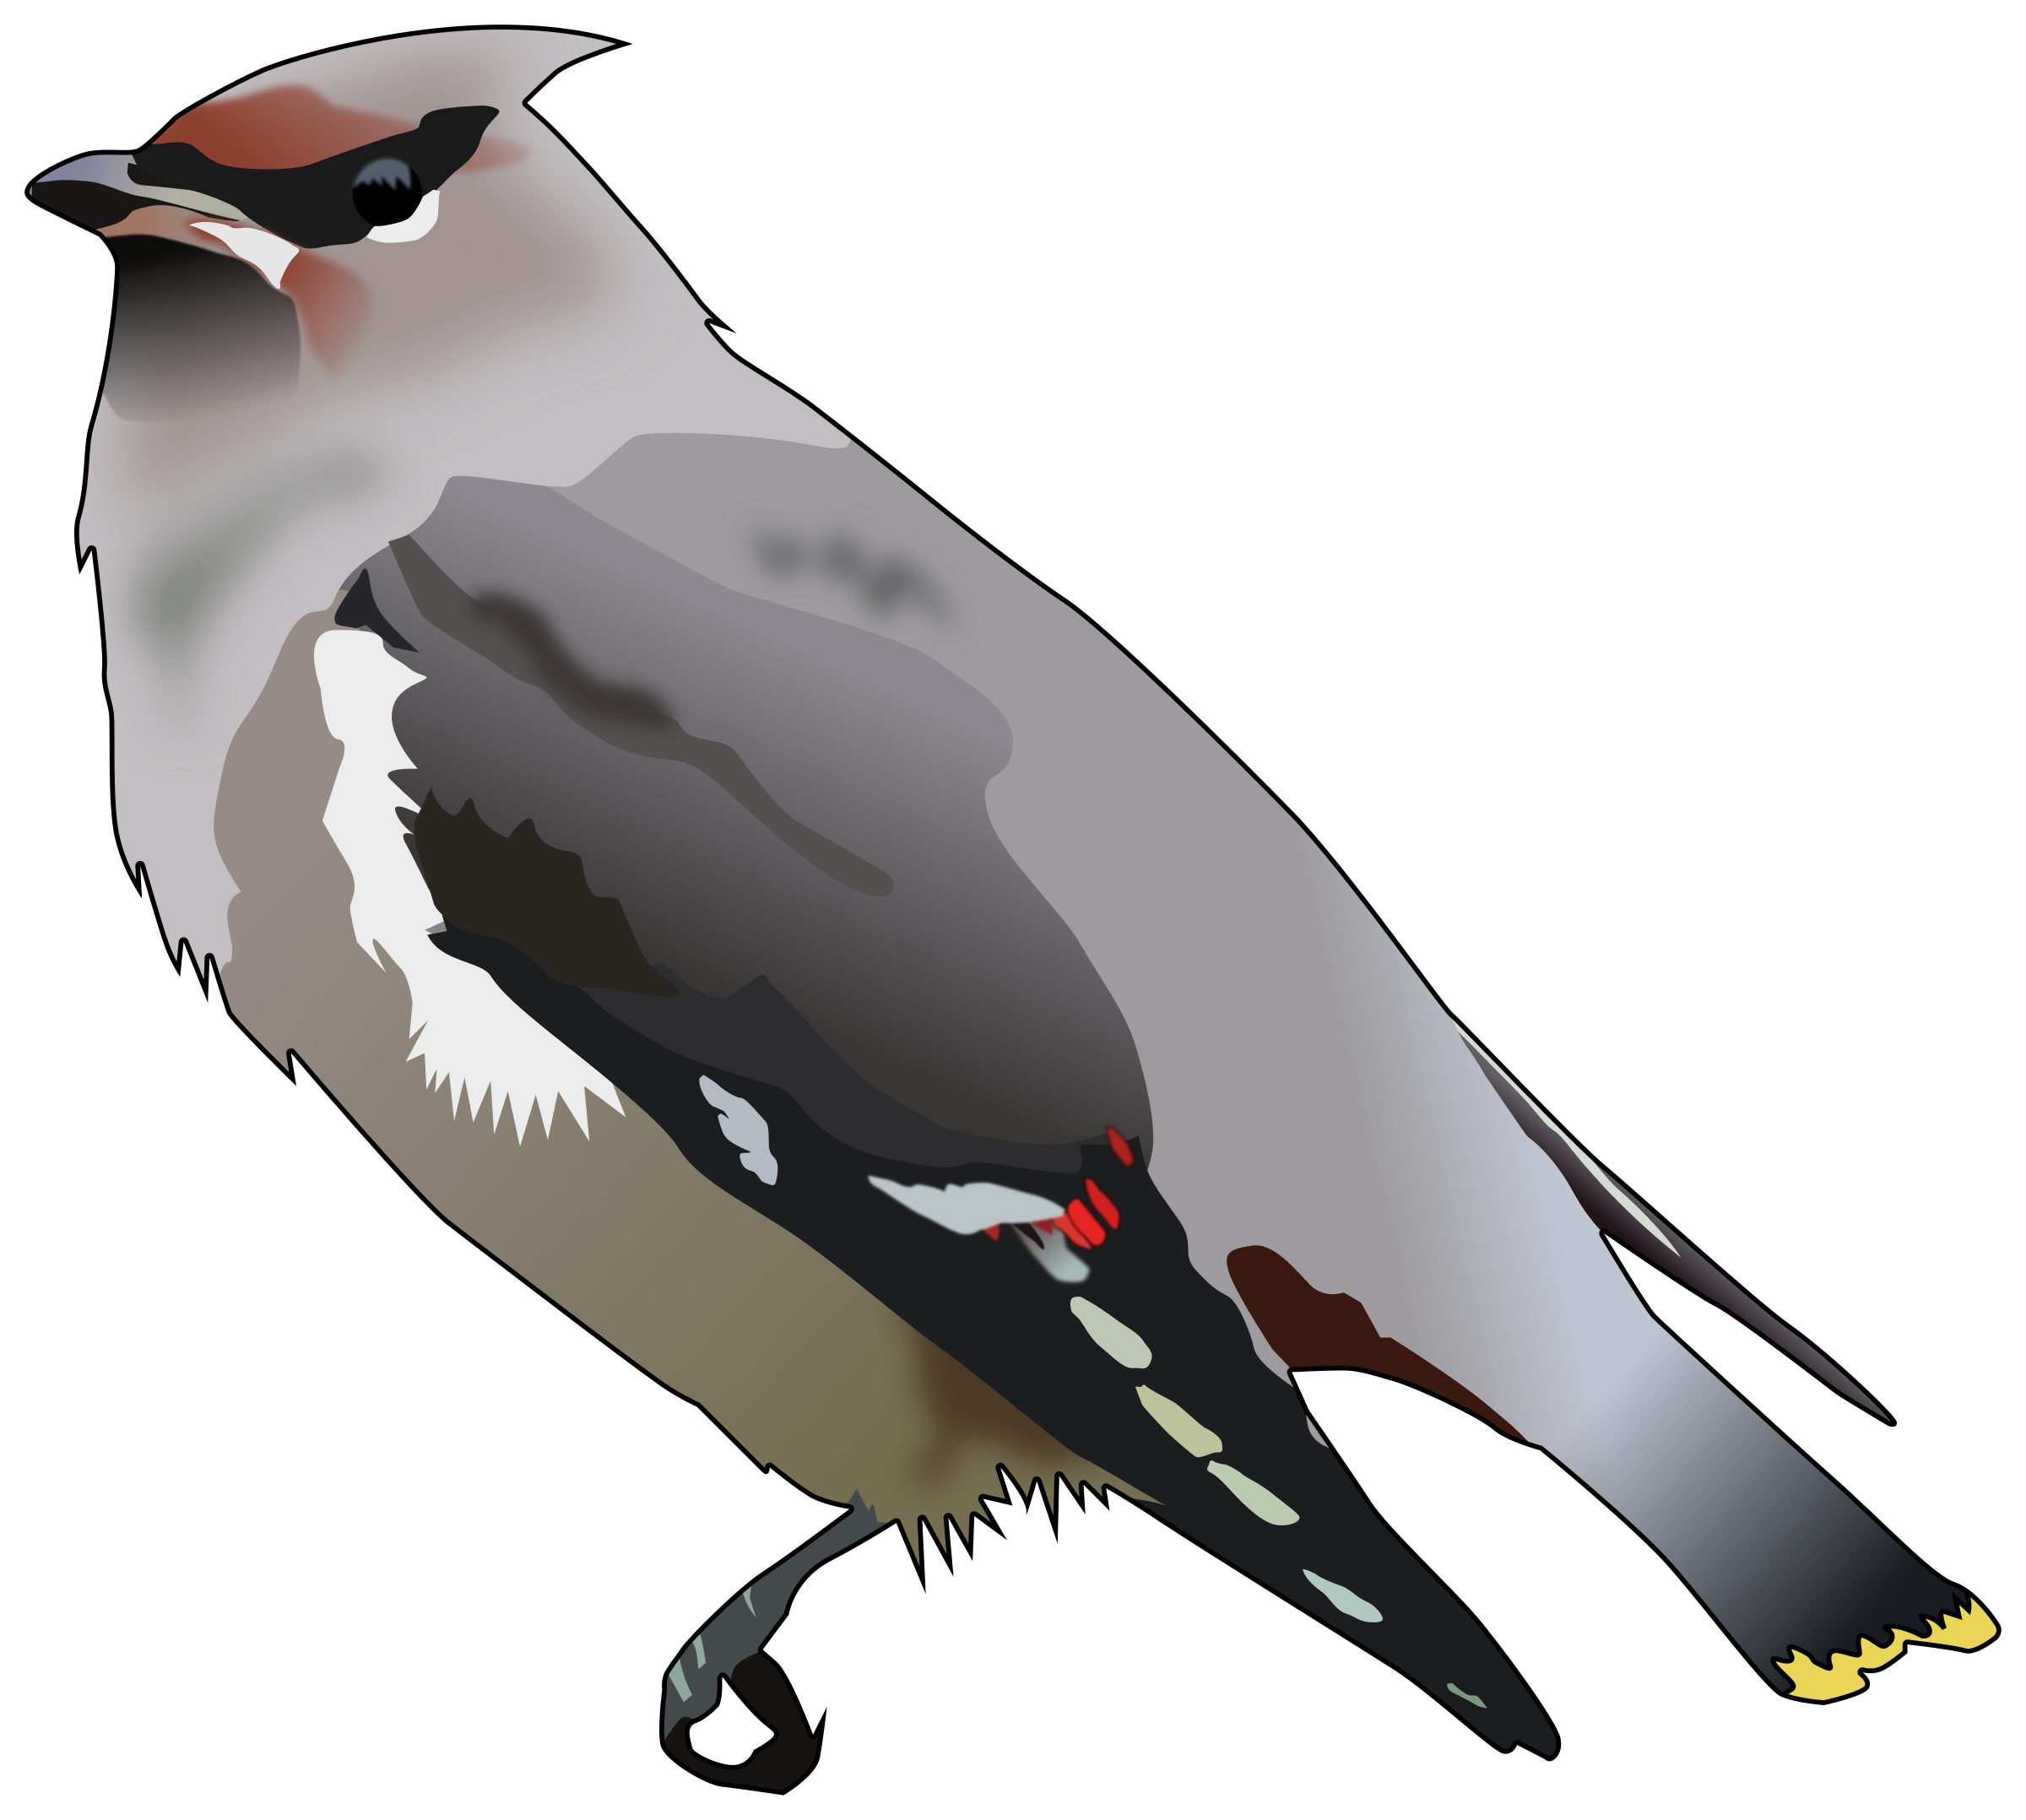 Waxwing clipart #4, Download drawings